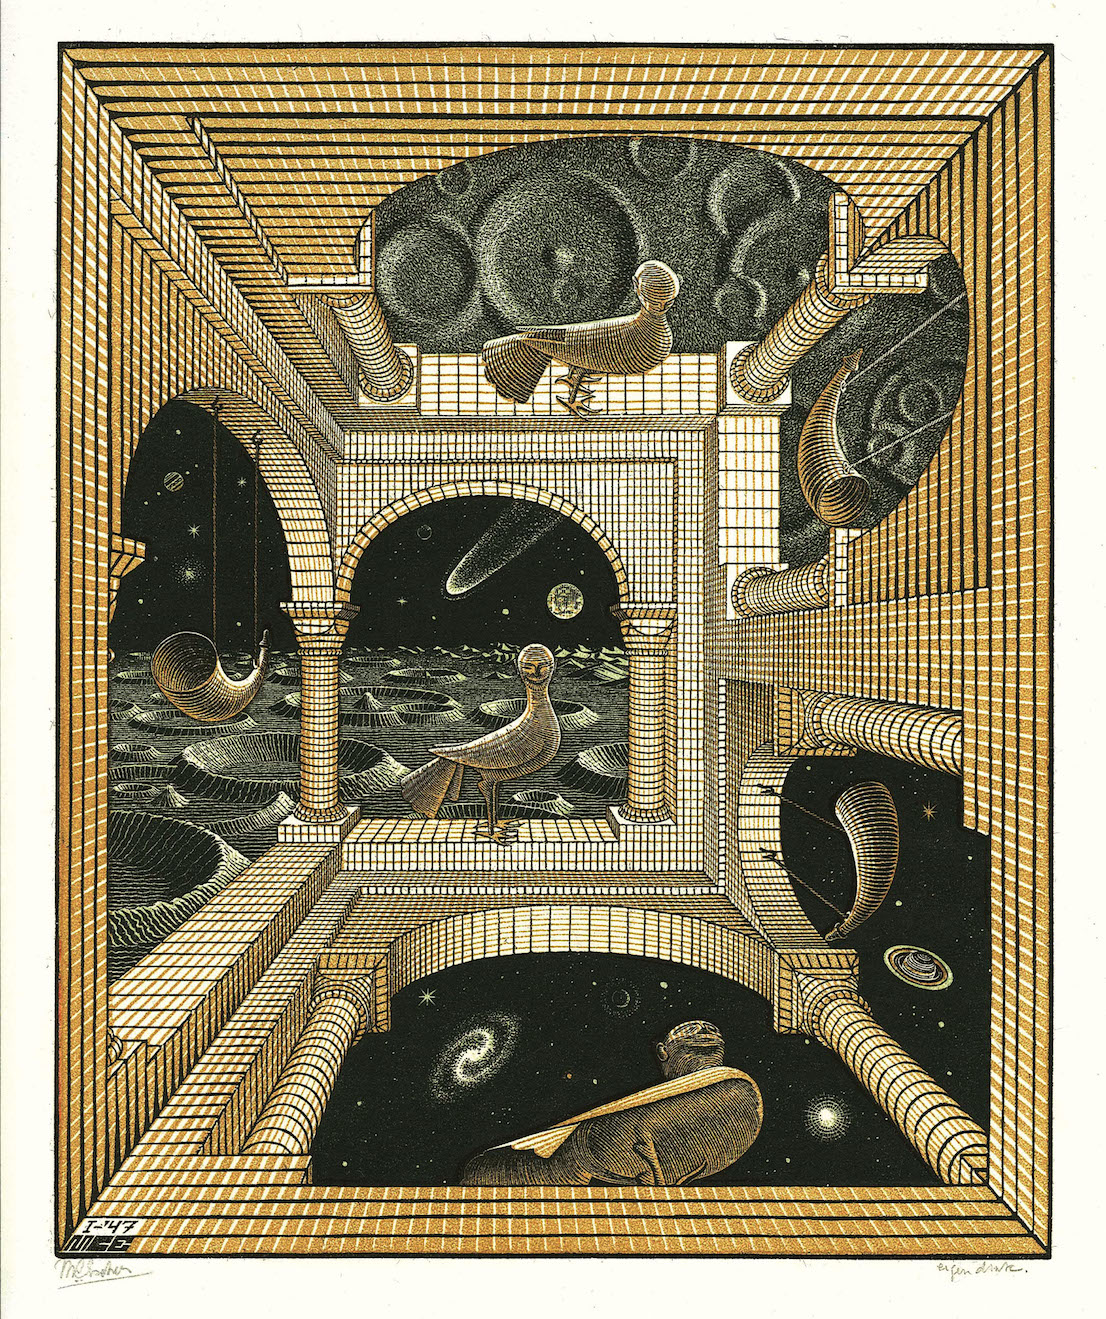 Maurits Cornelis Escher Altro mondo II 1947 litografia cm 31,8 x 26,1 Collezione privata All M.C. Escher works © 2014 The M.C. Escher Company. All rights reserved www.mcescher.com